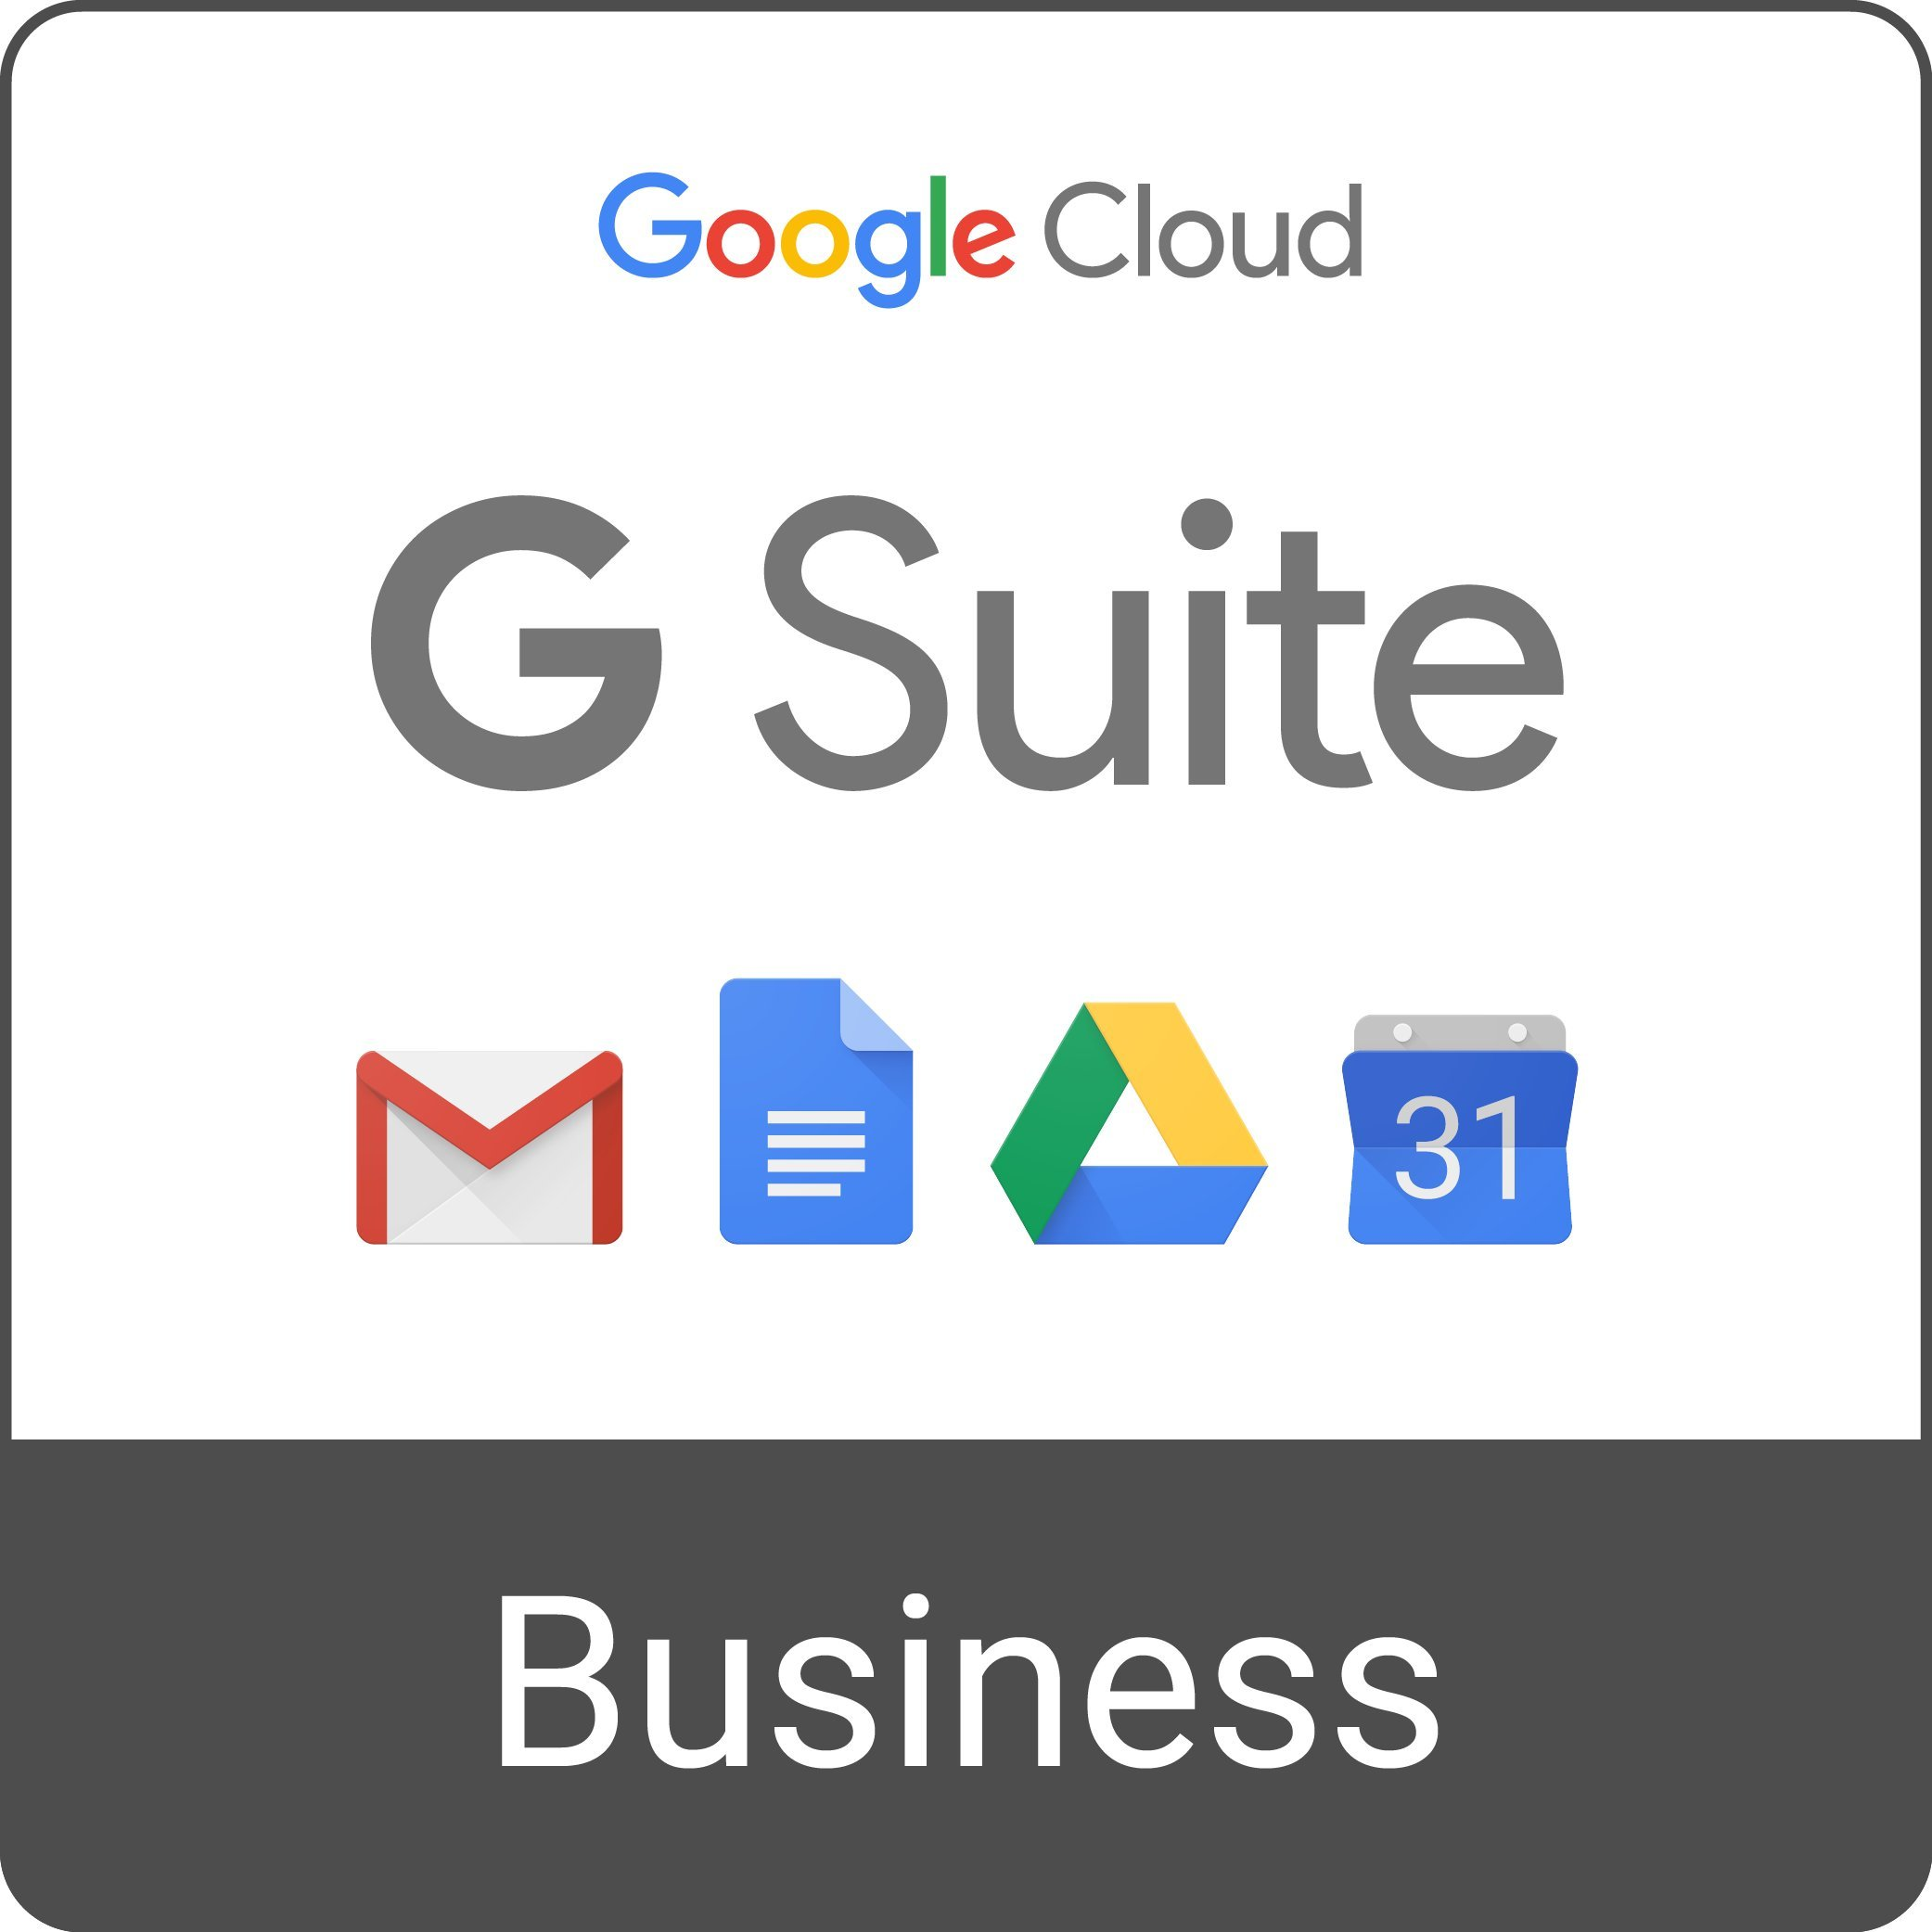 G Suite Business | Monthly Subscription with Auto-renewal | includes Business Gmail, unlimited Drive storage, Docs, Calendar, and more by Google Cloud